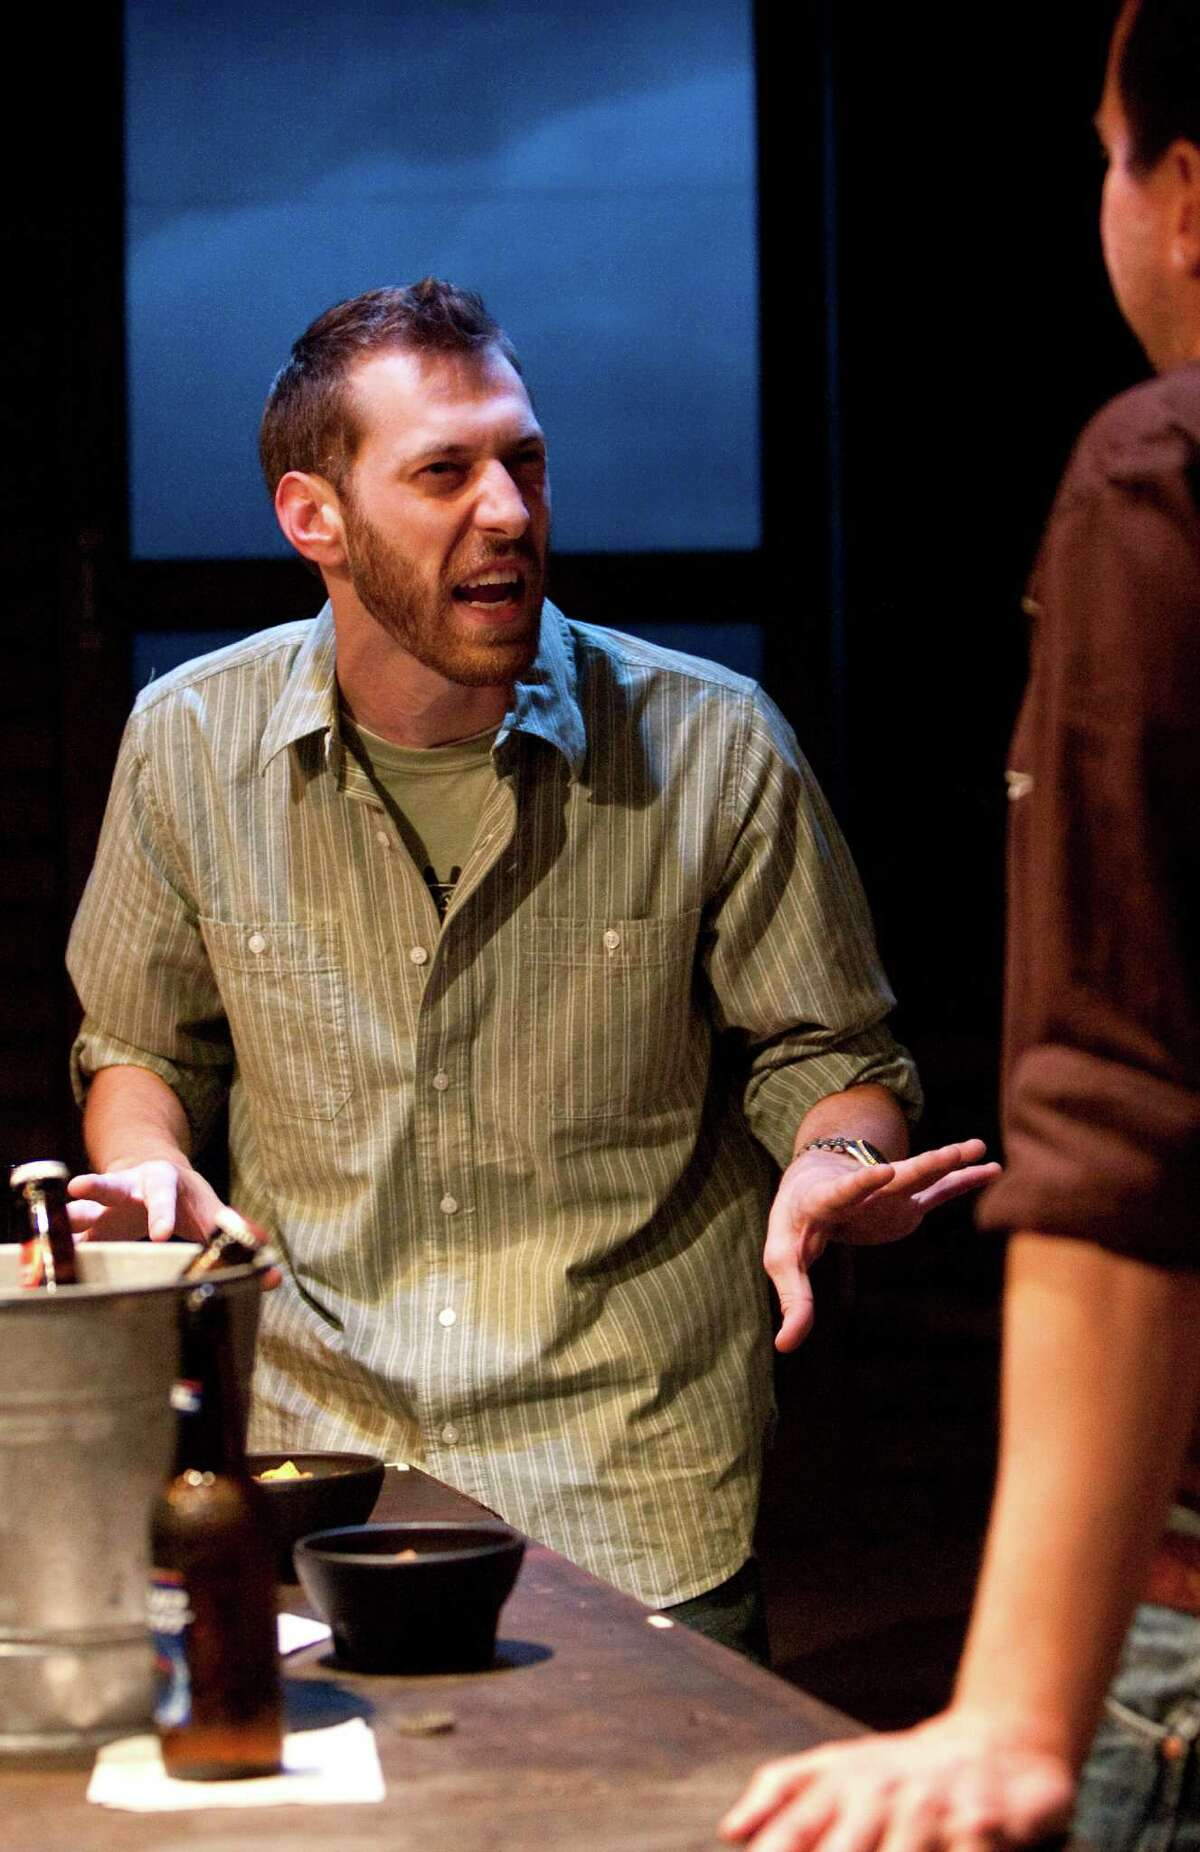 John DeLoach, left, rehearses a scene with Troy Schulze, right, from the play American Falls at DiverseWorks Wednesday, May 23, 2012, in Houston. (Cody Duty / Houston Chronicle)